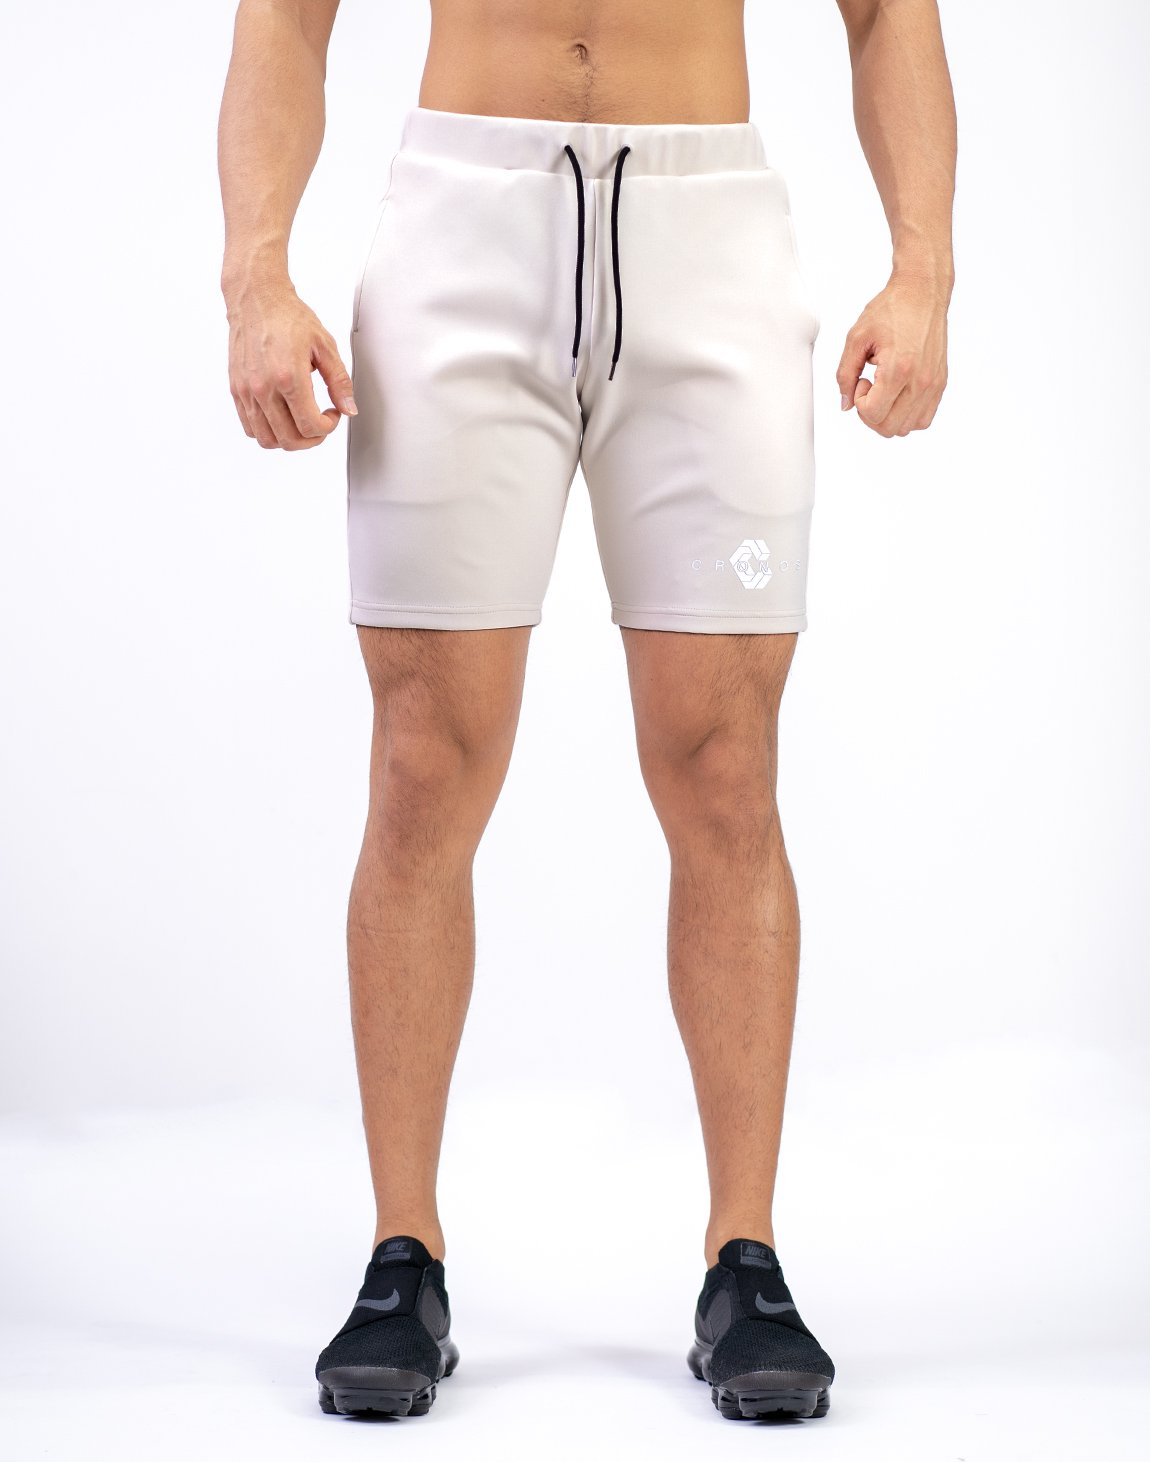 <img class='new_mark_img1' src='https://img.shop-pro.jp/img/new/icons1.gif' style='border:none;display:inline;margin:0px;padding:0px;width:auto;' />CRONOS NEW LOGO SHORTS  BEIGE